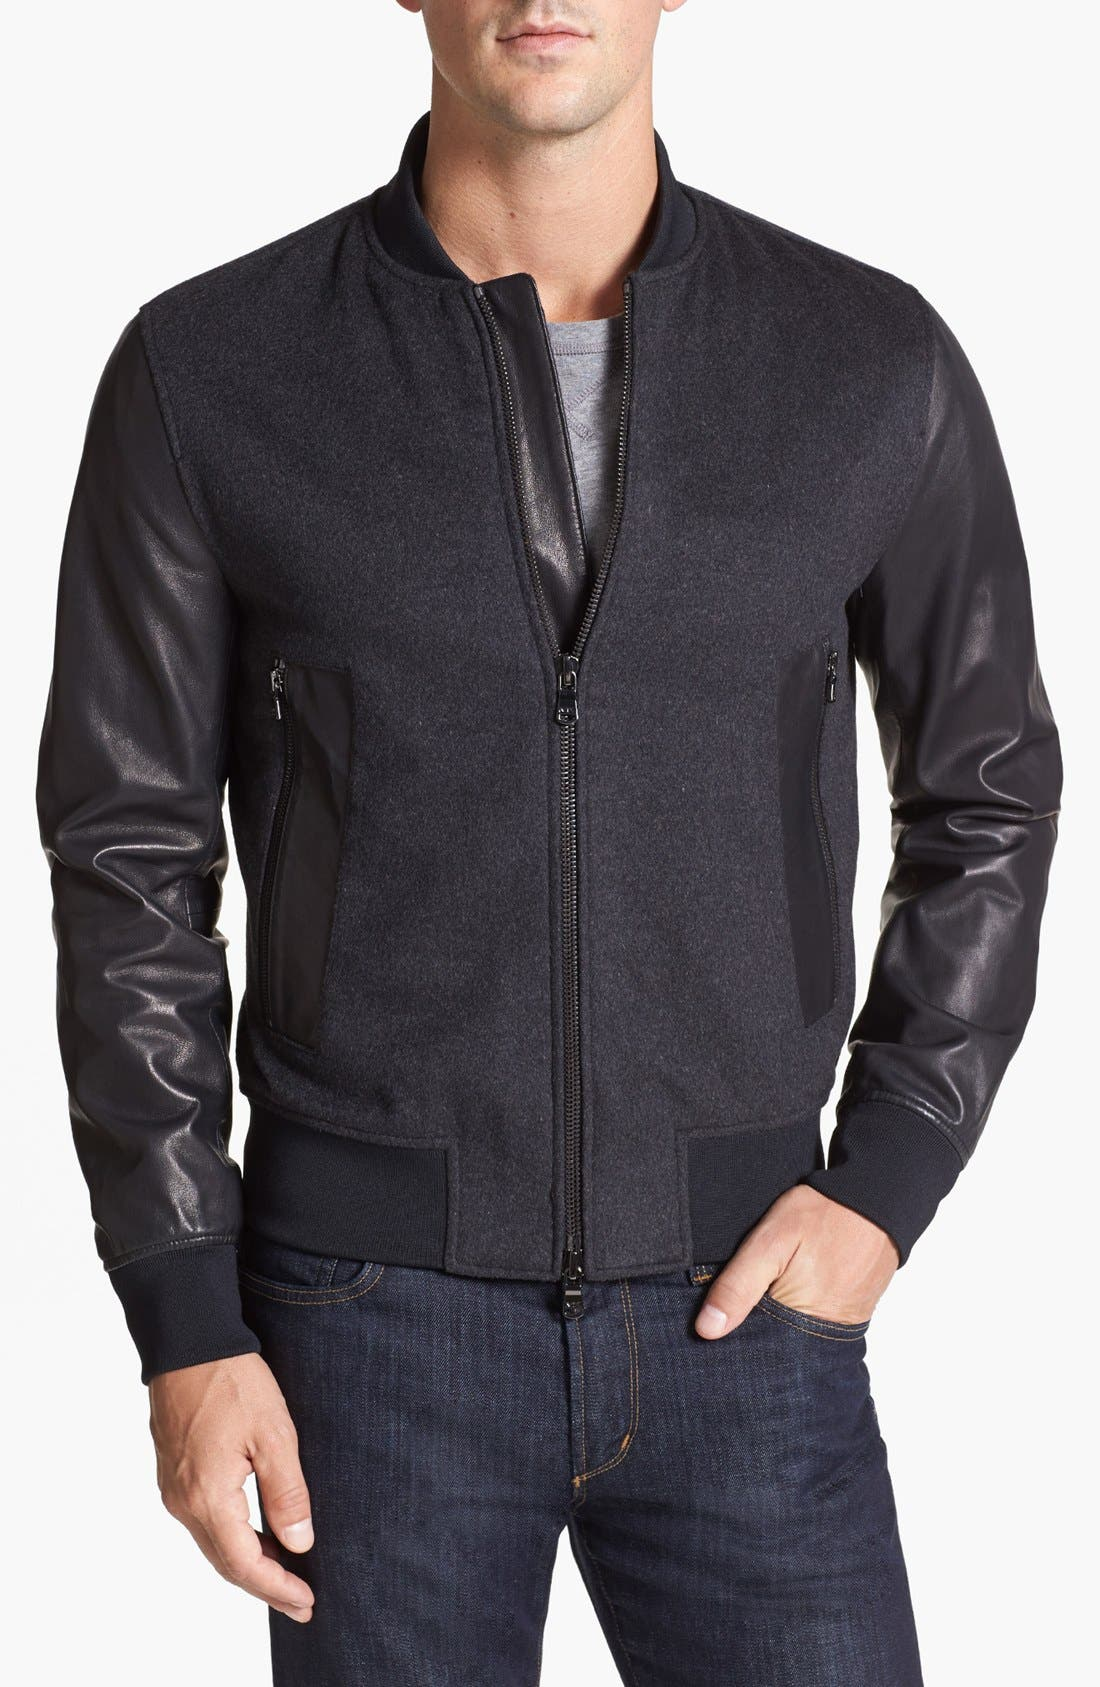 Main Image - Michael Kors 'Melton' Leather Sleeve Jacket